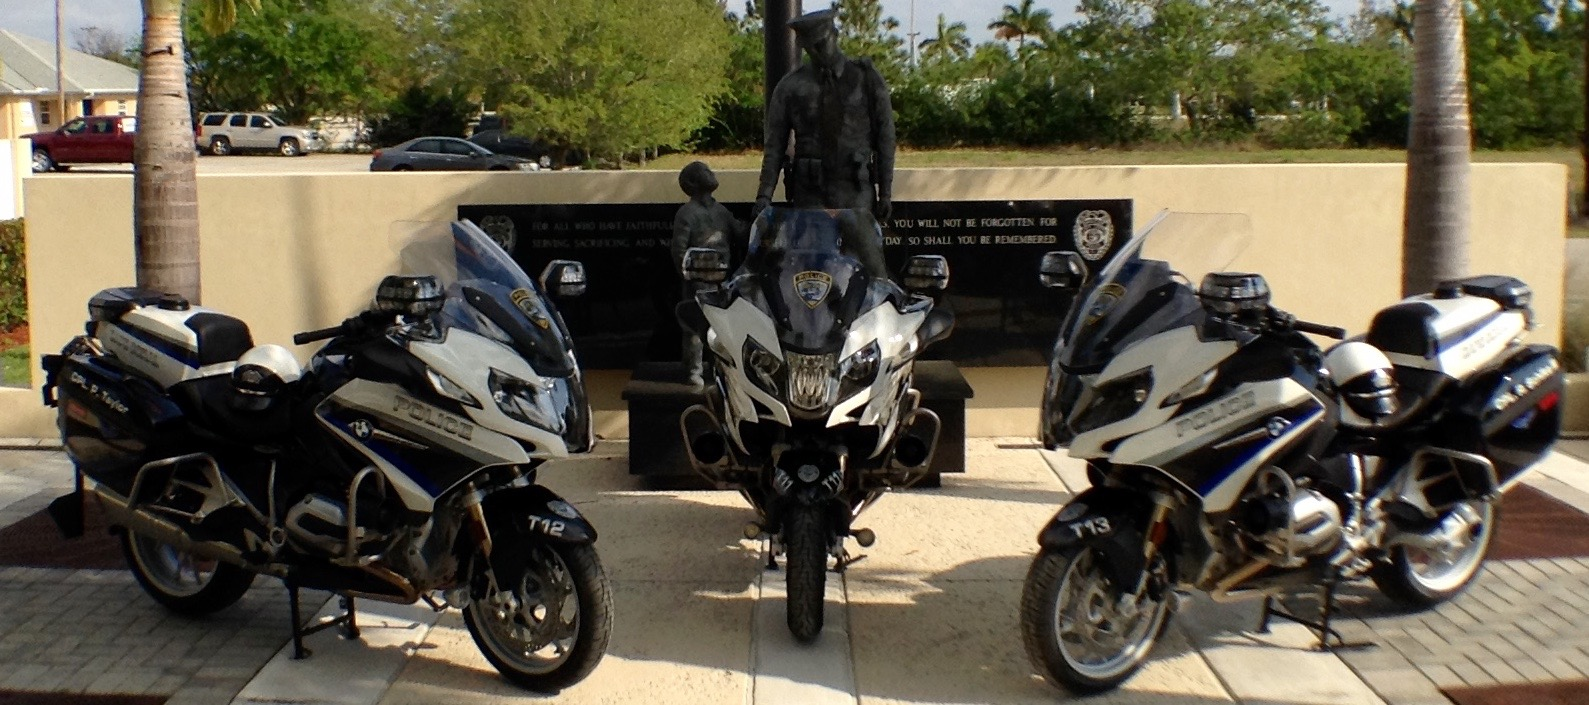 medium resolution of cape coral police department unveils new motorcycles for traffic unit cape coral police department